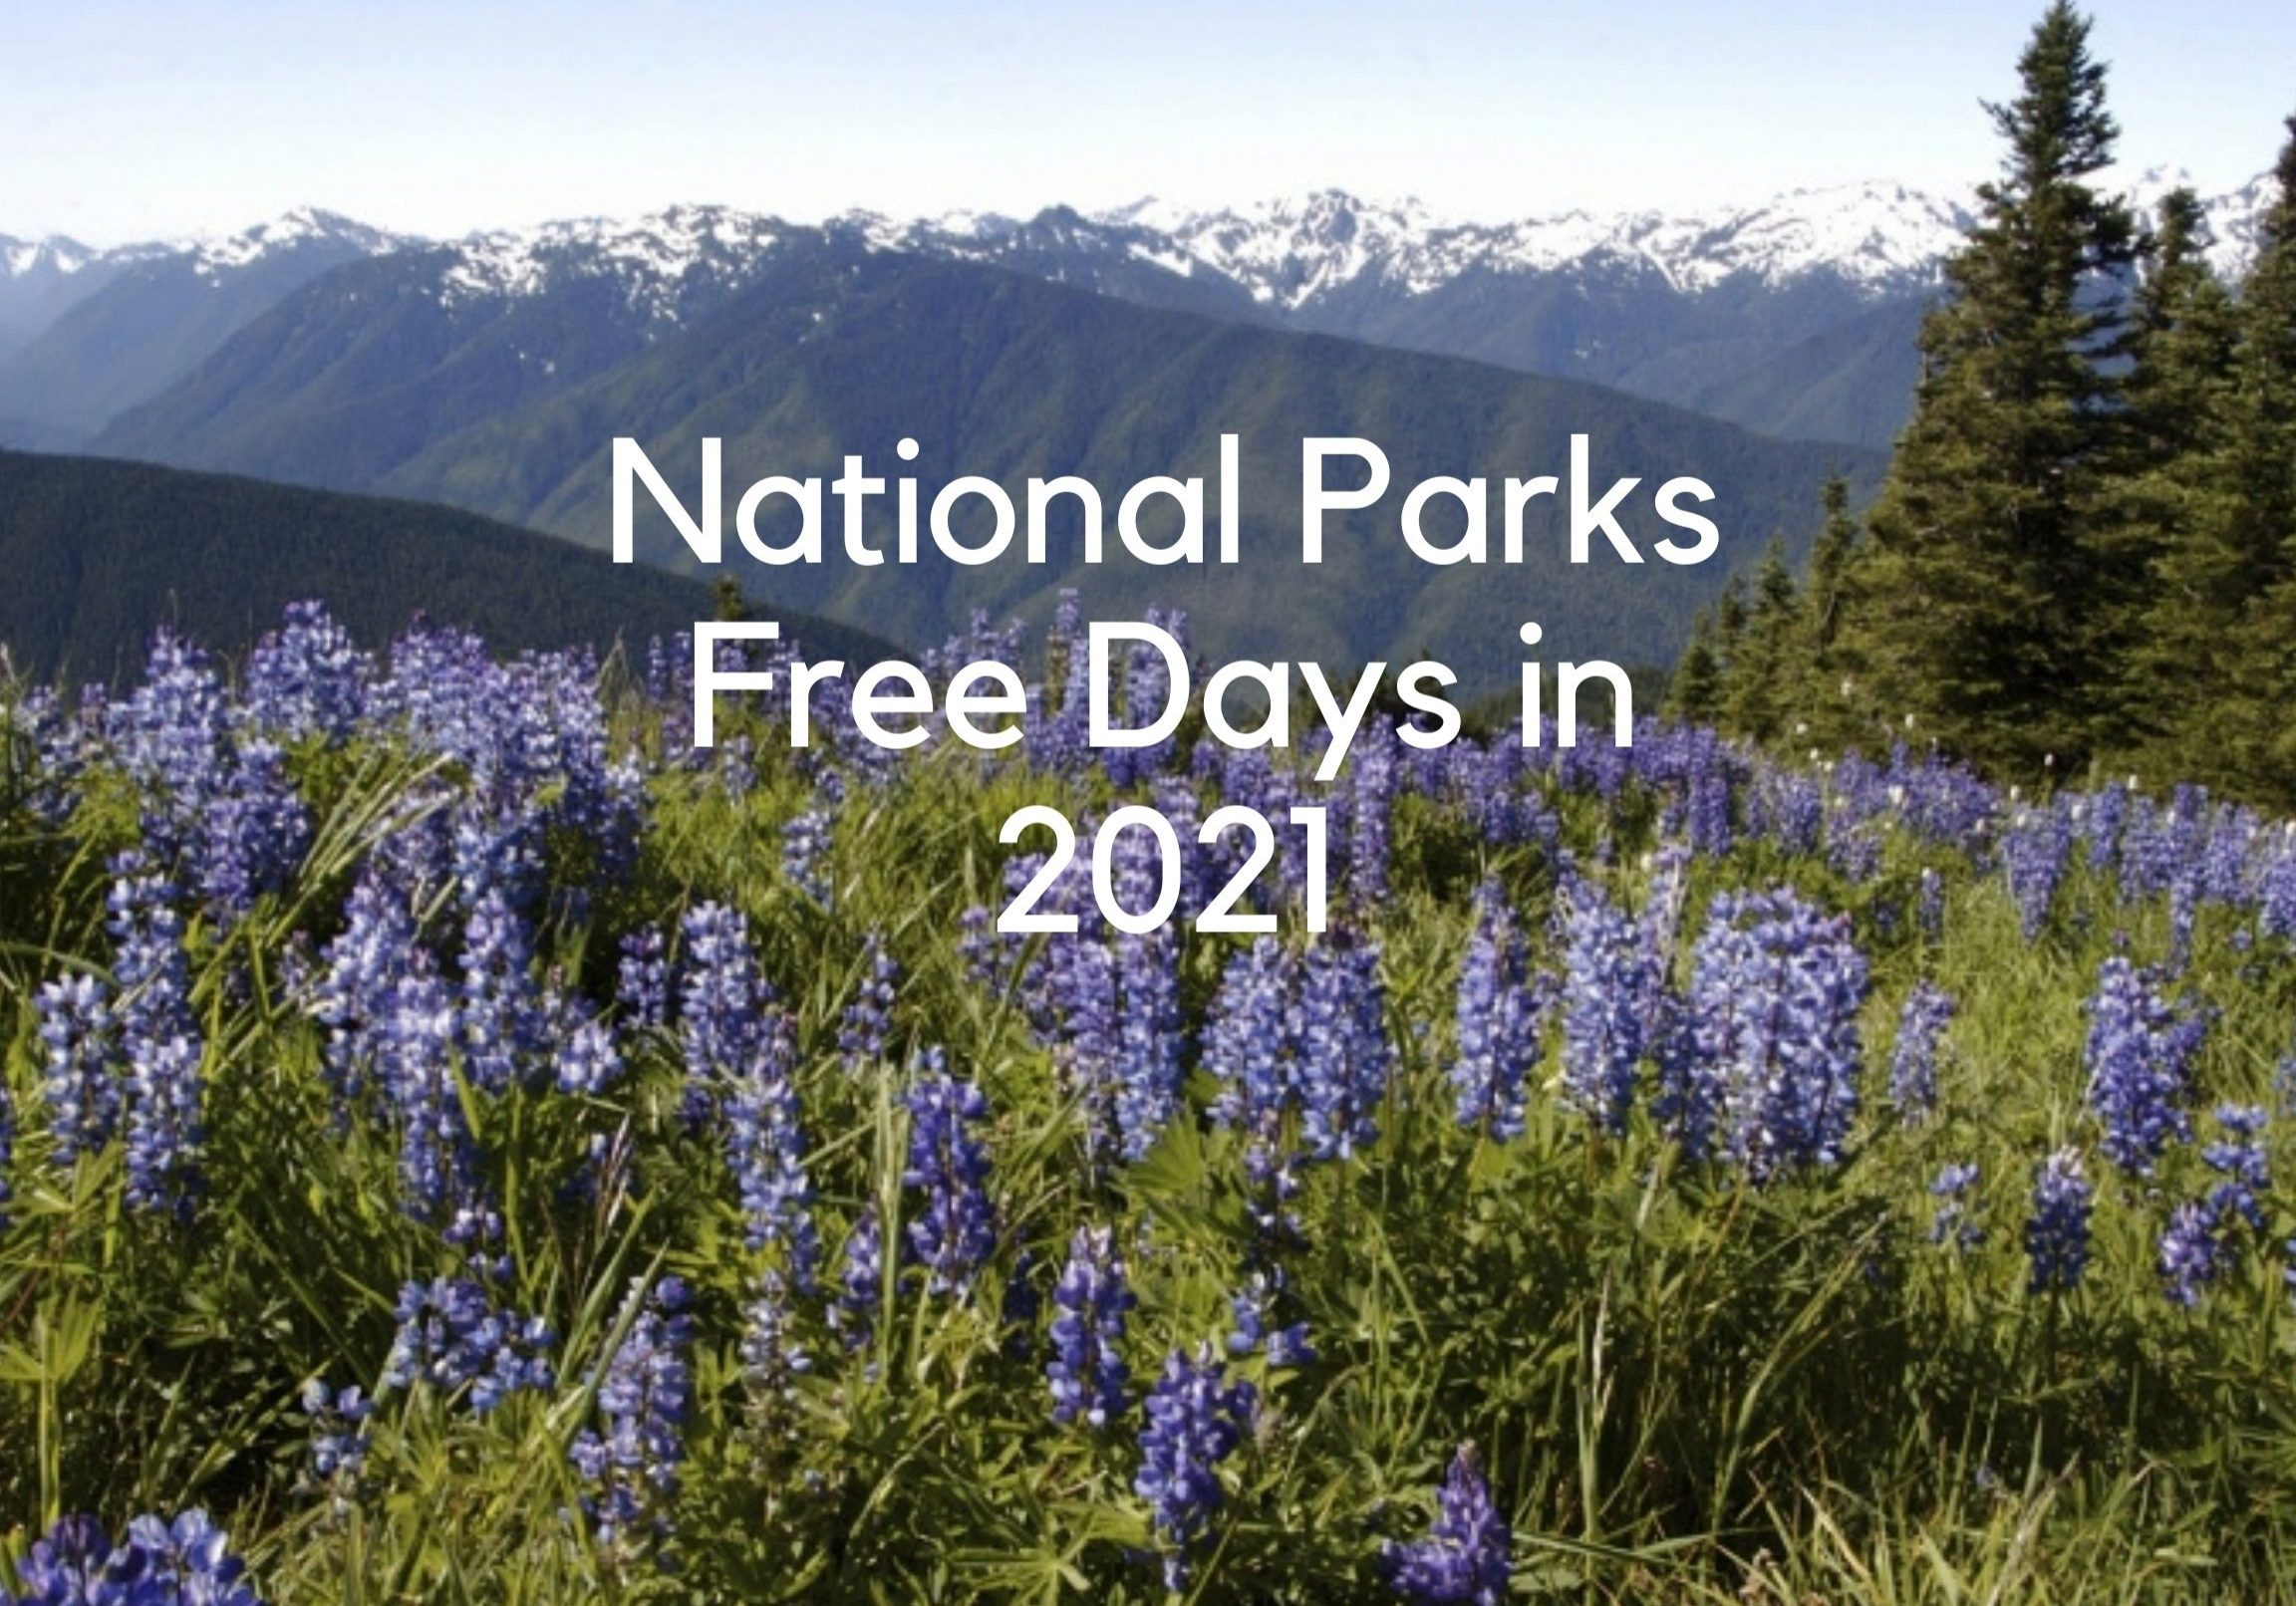 Fee-Free days to visit our national parks in 2021